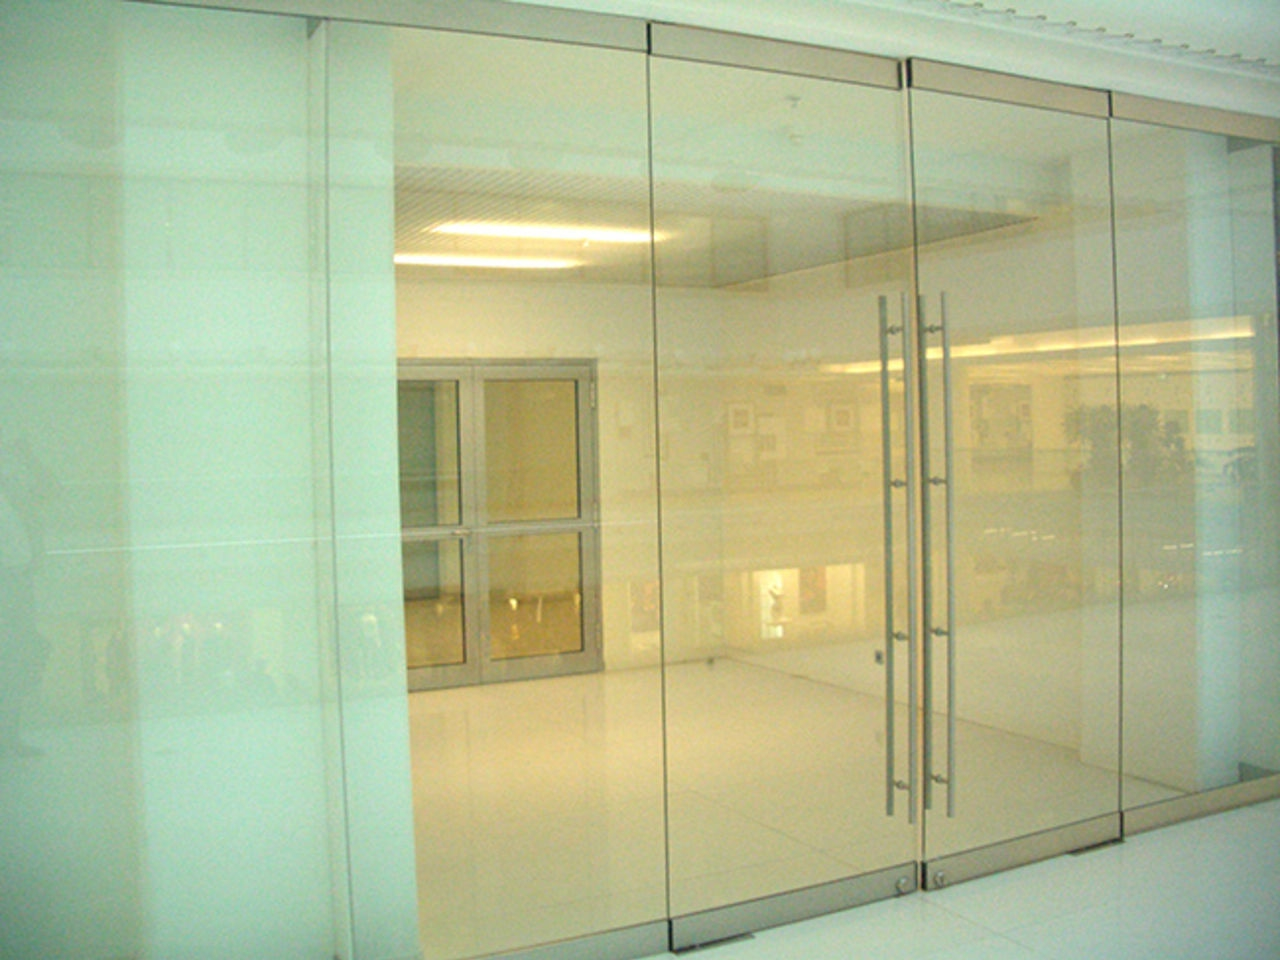 Swing glass door 28 images architectural entry swing doors creative mirror shower glass - Swinging double doors interior ...